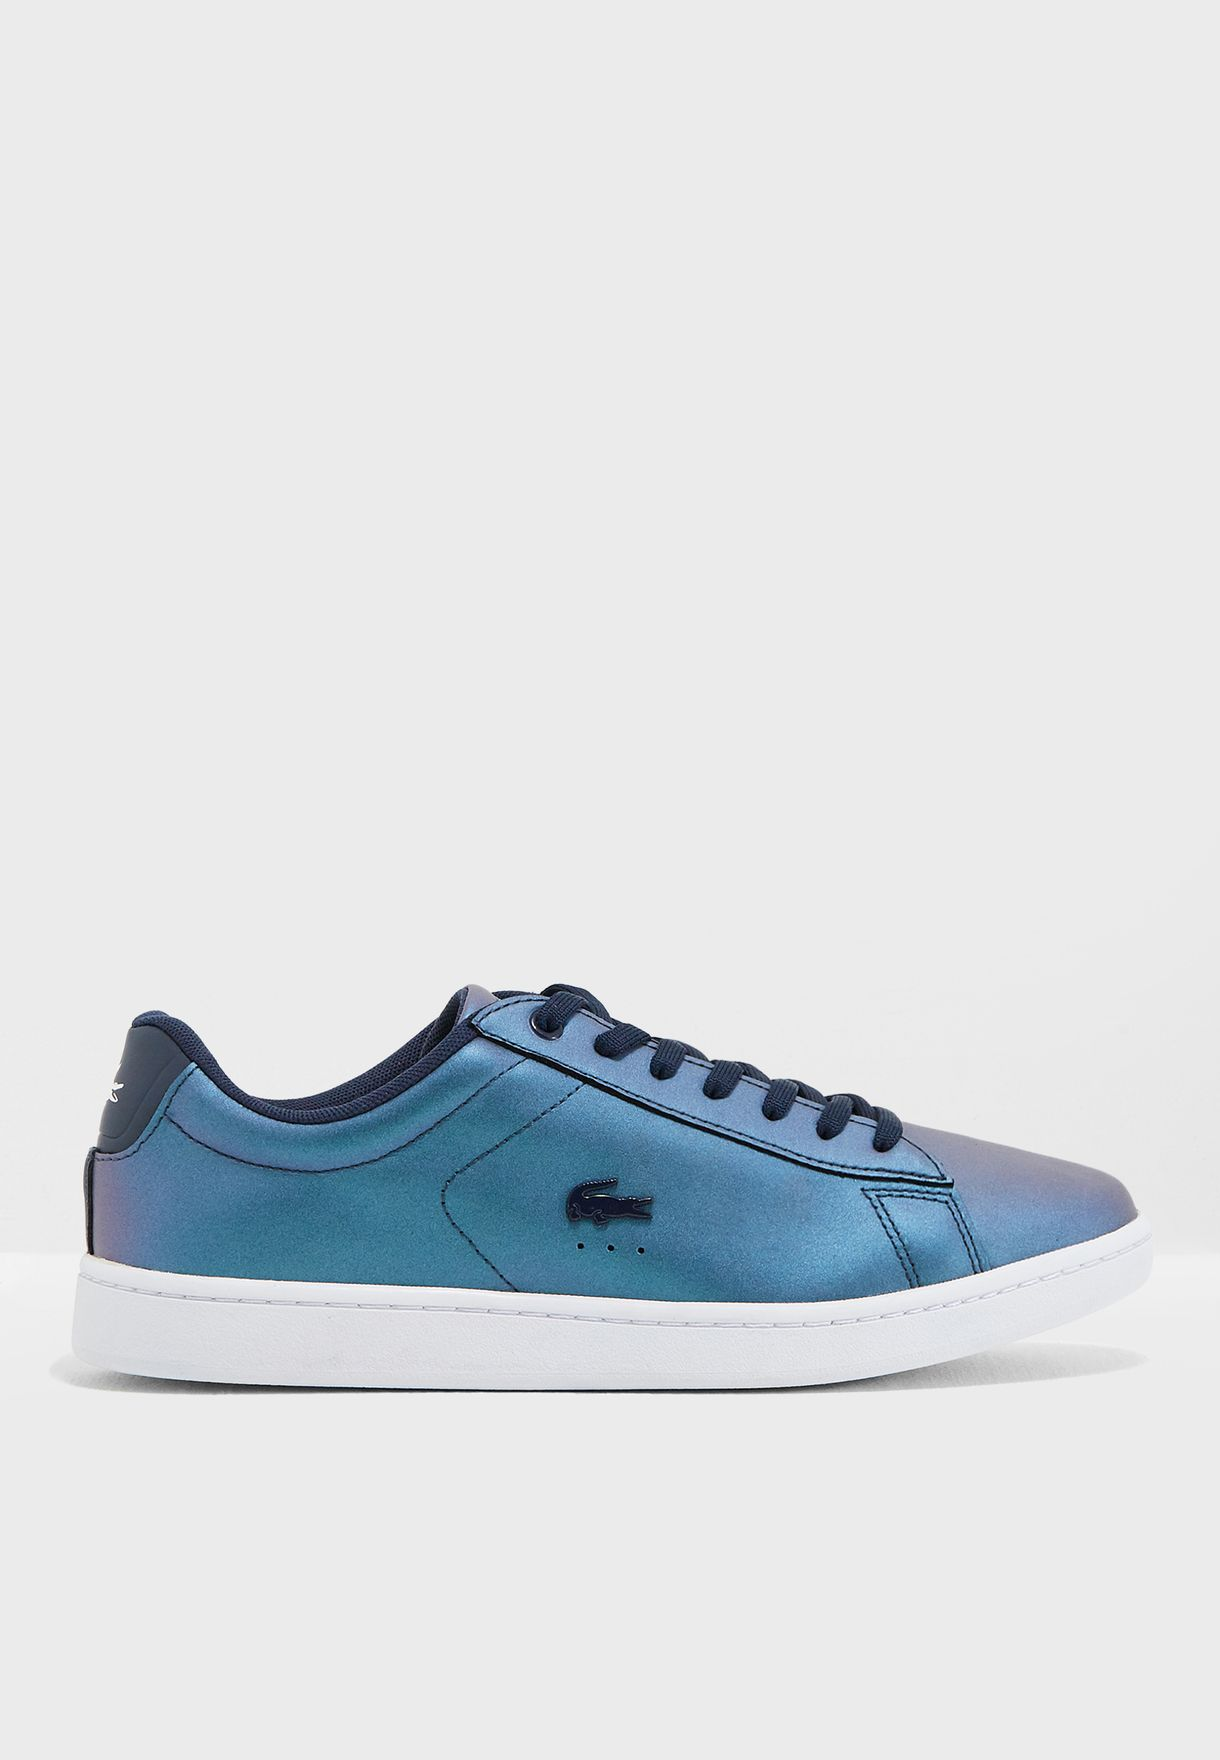 c5986ff1 Shop Lacoste blue Carnaby Evo 318 5 Spw Sneaker 736SPW0013 for Women ...